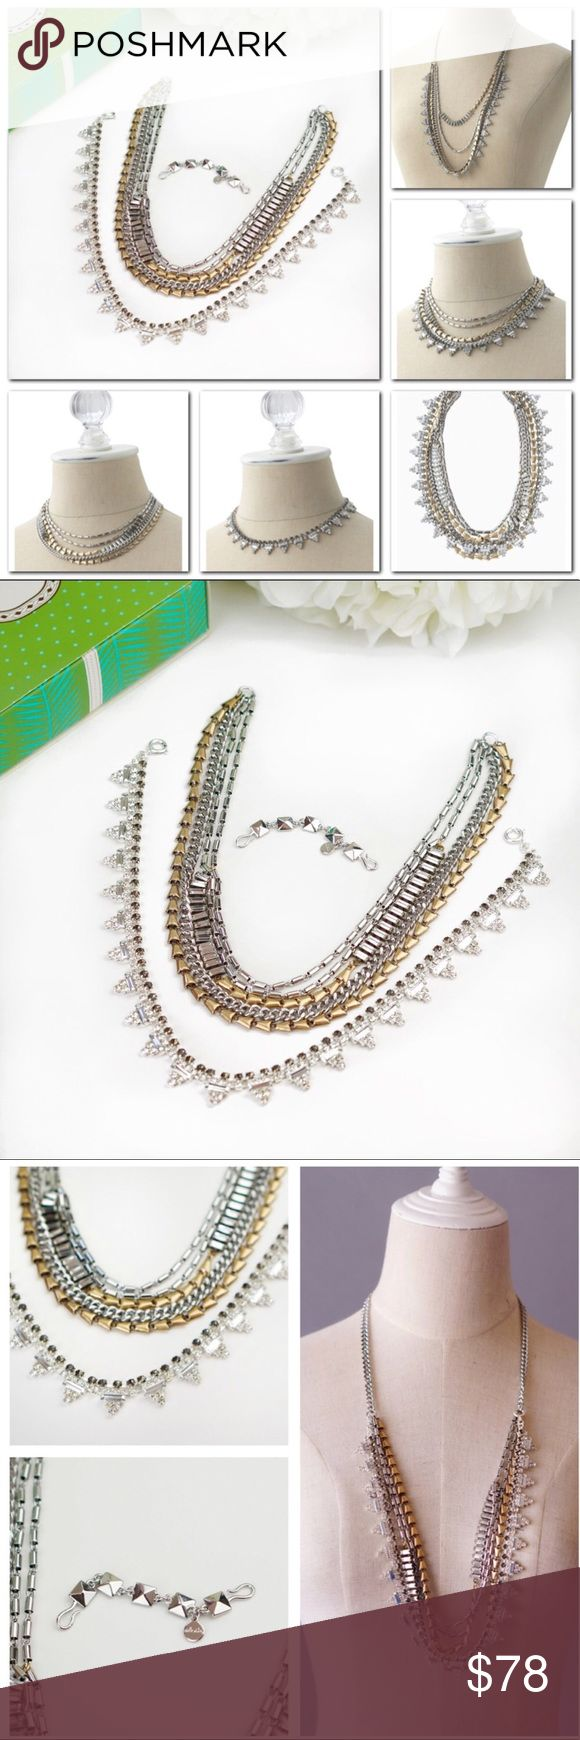 "Stella Dot SUTTON Mixed Metal Statement Necklace New In Box. Never worn. Our most versatile fashion necklace yet! Five (count 'em) ways to wear our Sutton statement necklace: Long and loose for a laid-back look. Clasped into a statement when you're feeling bold. Plus or minus the sparkle strand. Or just the sparkle when you're in the mood to shine. * 17.75"" when worn short and 32"" when worn long. * Mixed metal plating. Stella & Dot Jewelry Necklaces"